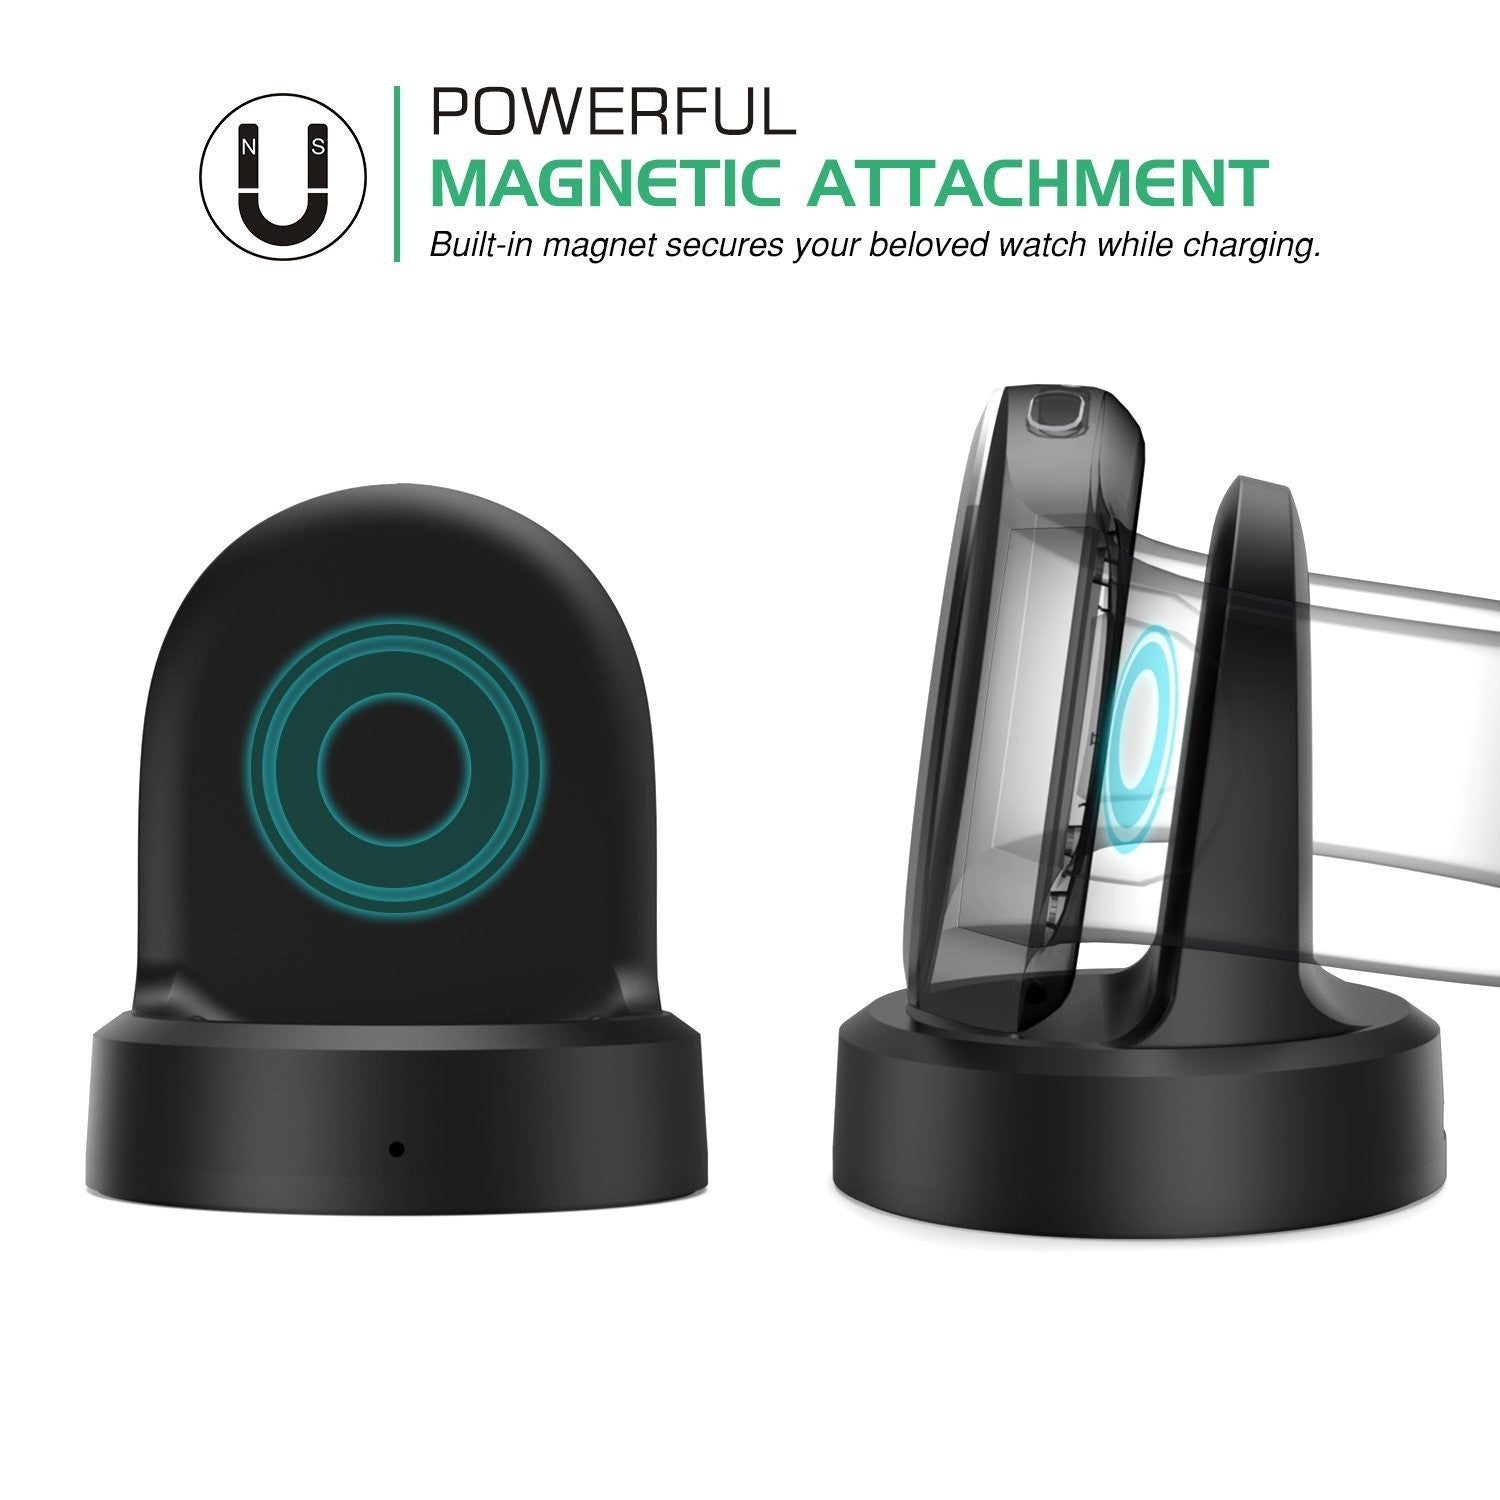 Qi Charging Cradle Dock For Samsung Gear S2 Watch SMR-720 SMR-730 SMR-732 Lock